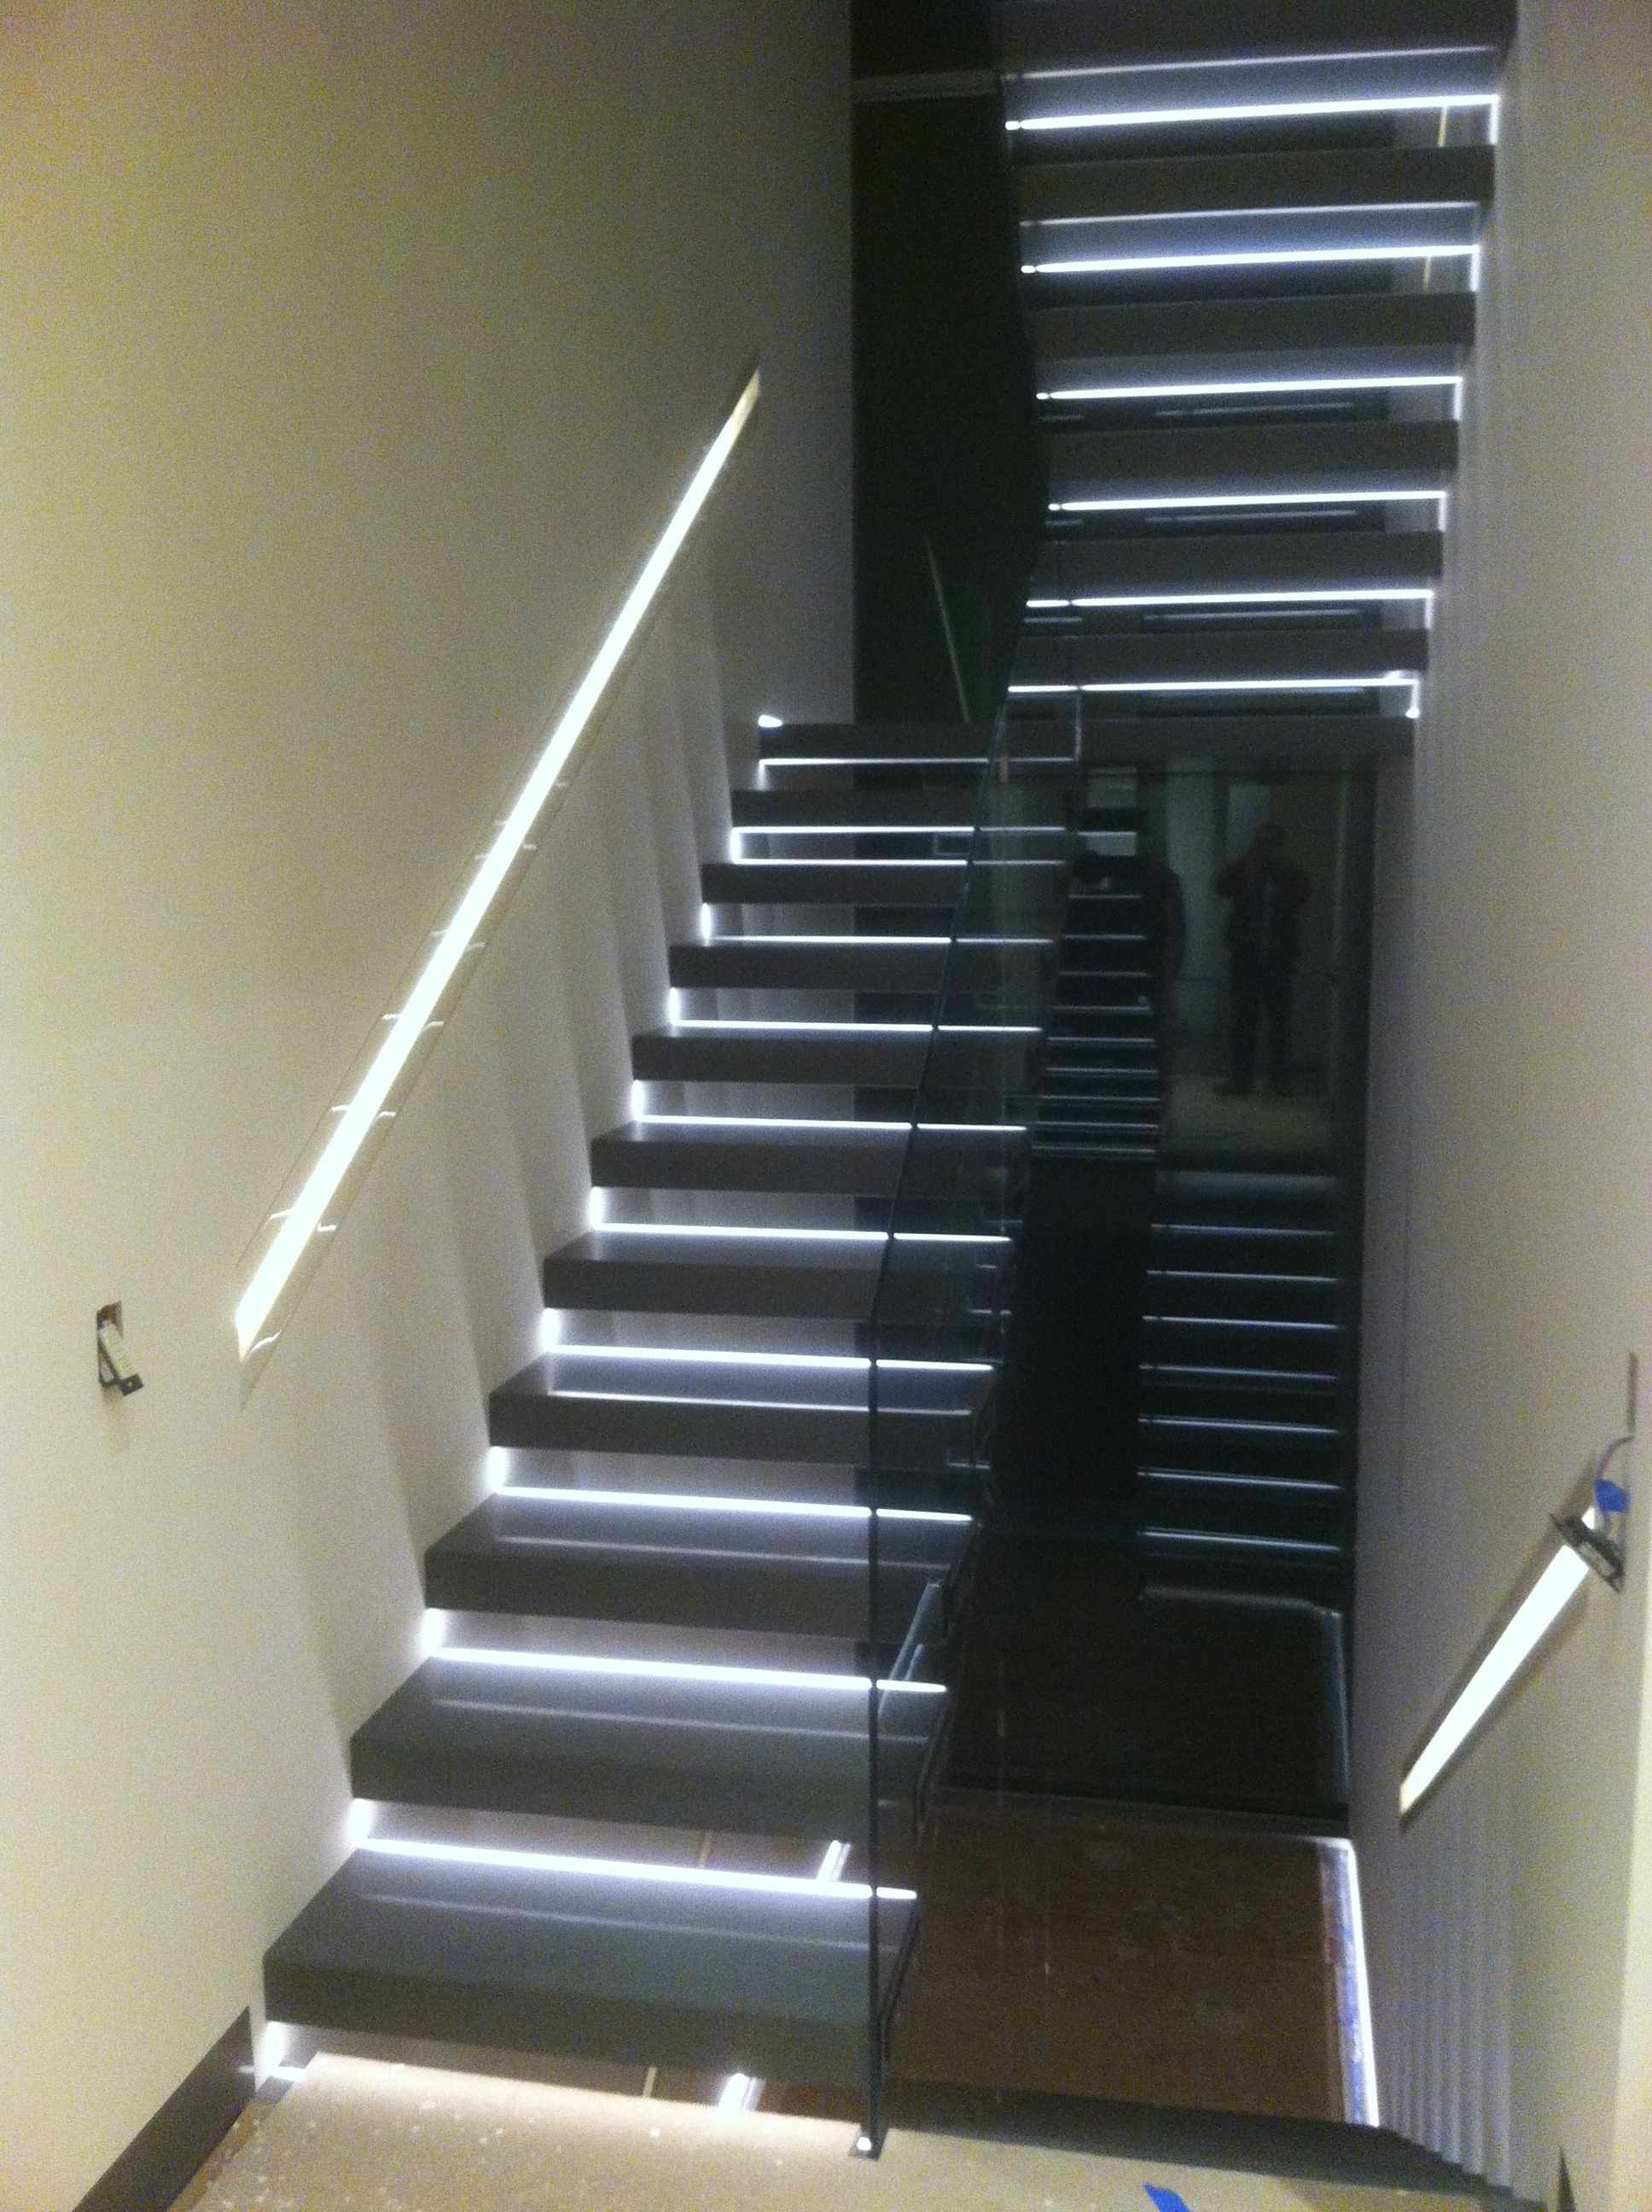 Modern Stairwell Lighting. Nj Electrician Unique Lighting Stairs